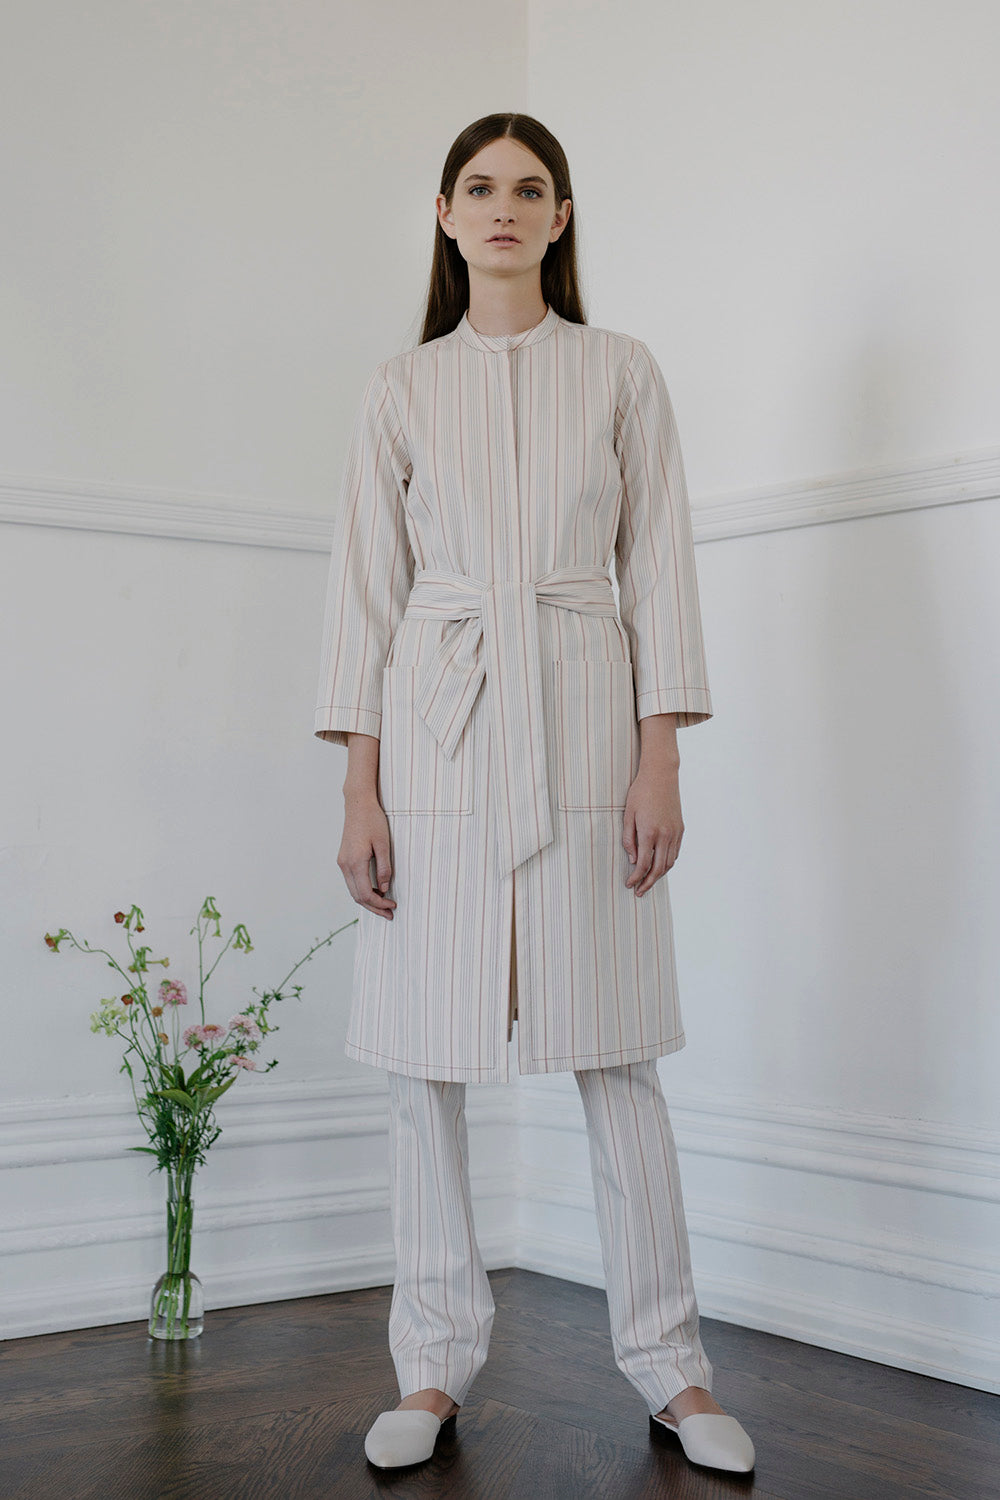 SS 2018 - COLLECTIONS